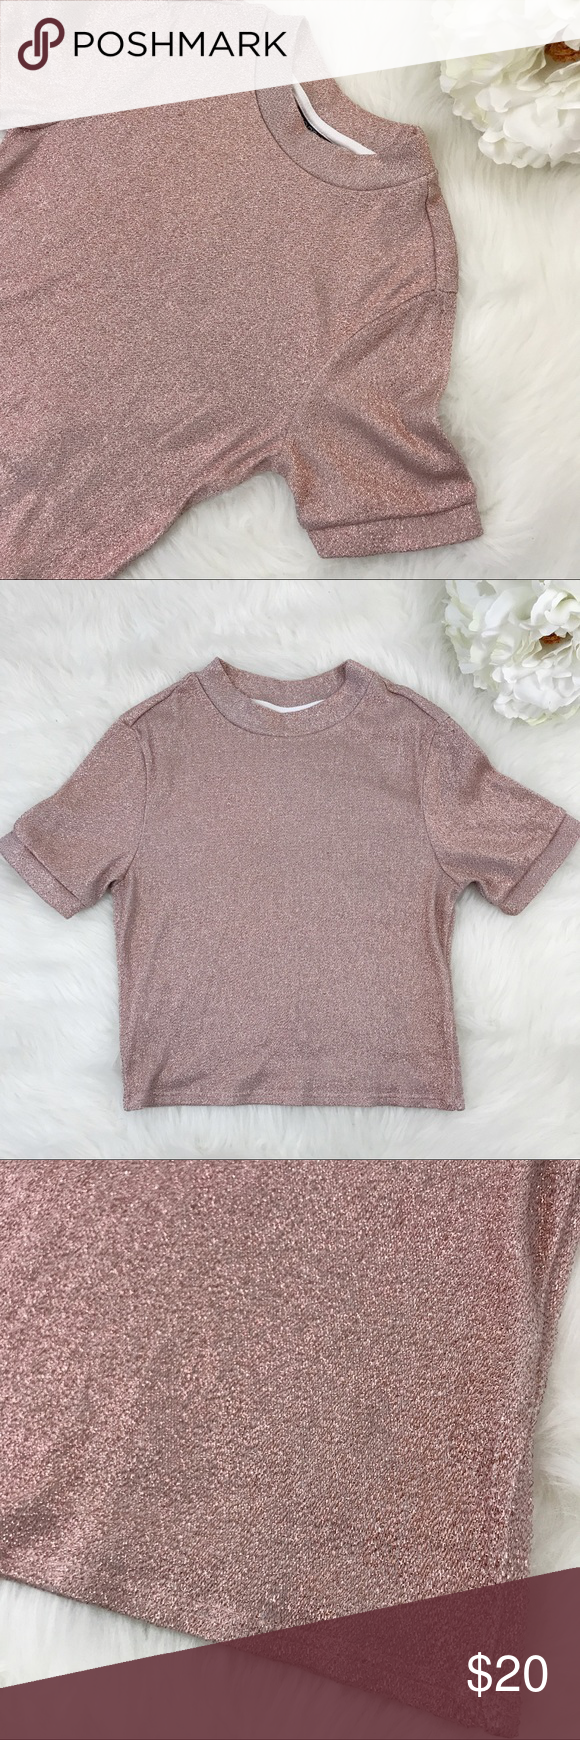 "Topshop | Sparkly Short Sleeve Crop Top Sparkly metallic rose dust short sleeve crop top. Size 2 from Topshop. Bust: 26"" Length: 16"" No flaws. Topshop Tops Crop Tops"